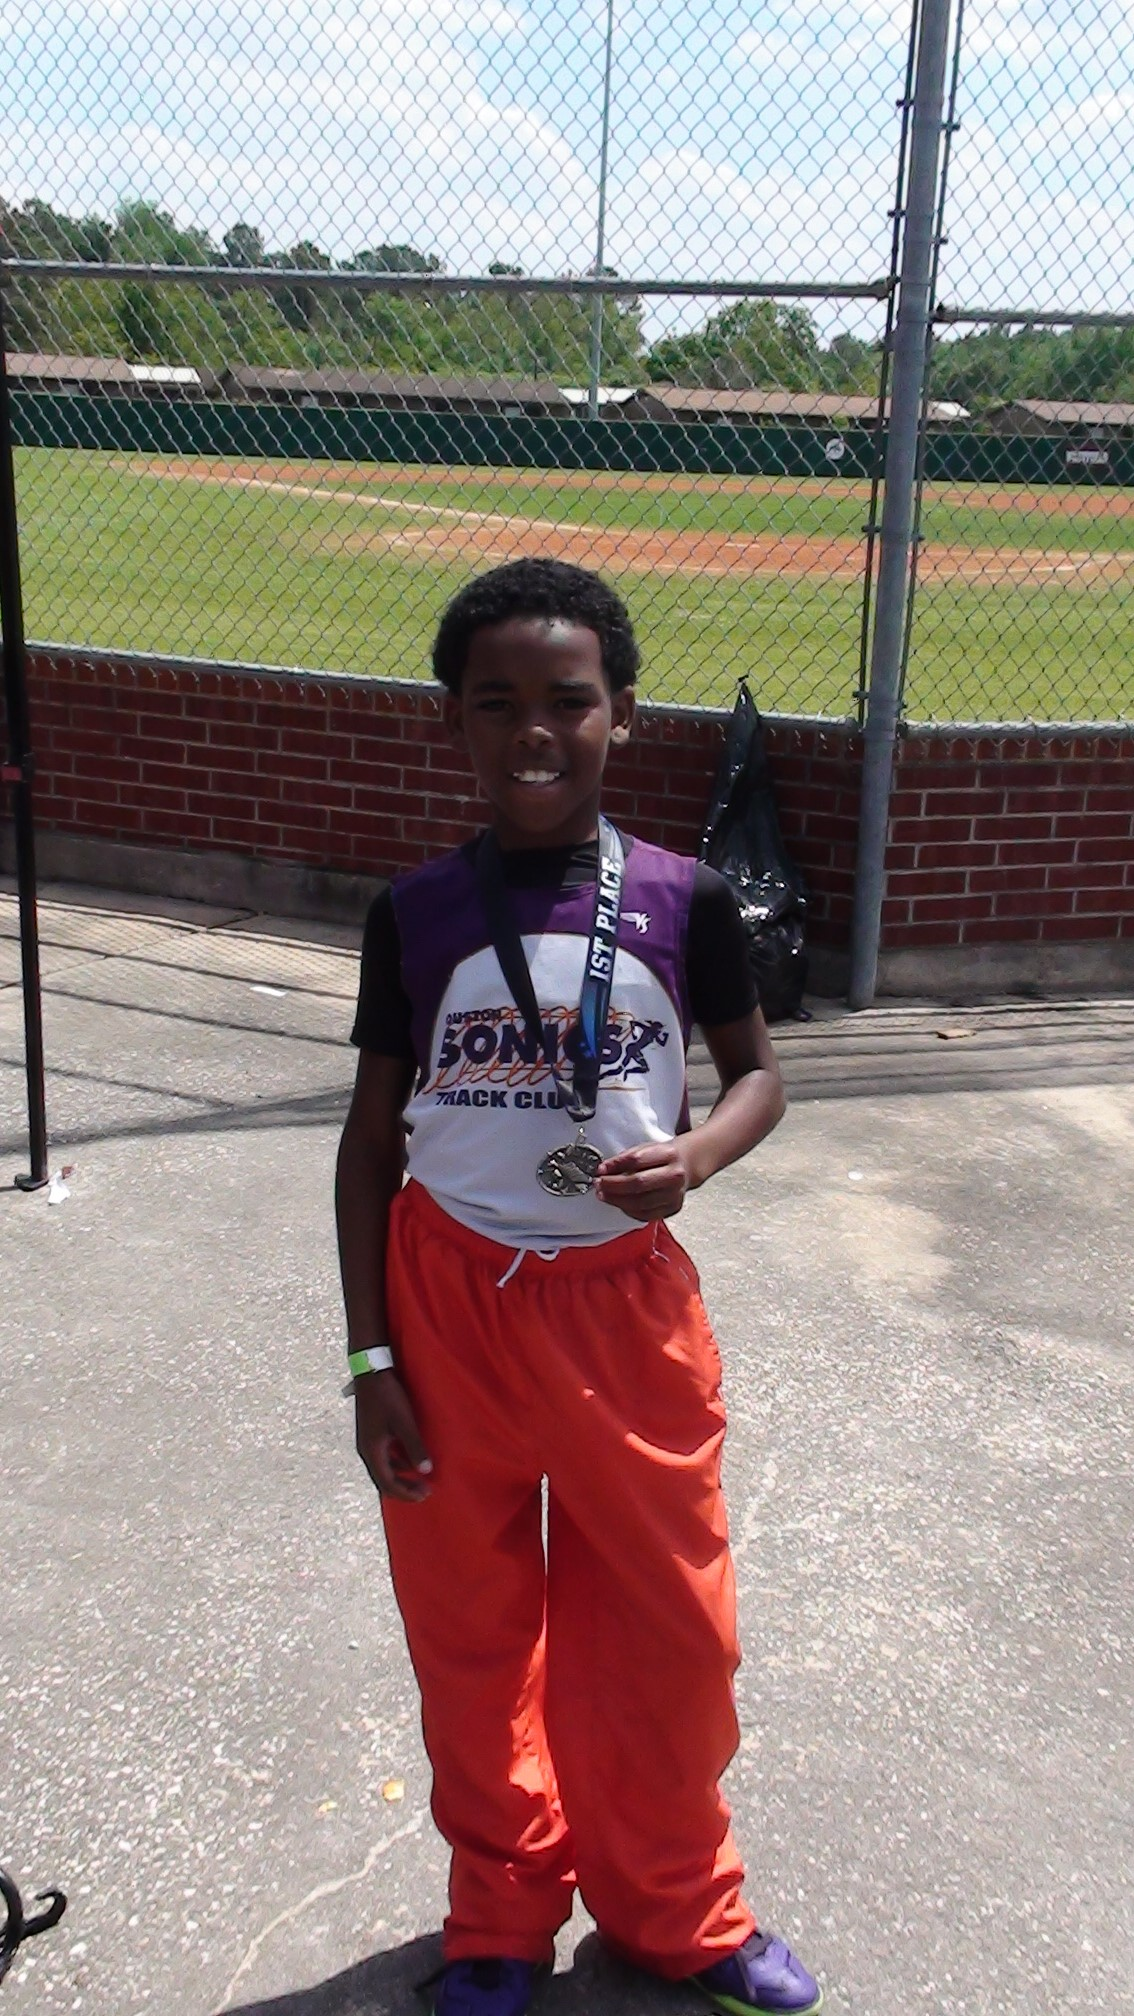 Davon took gold in the 800